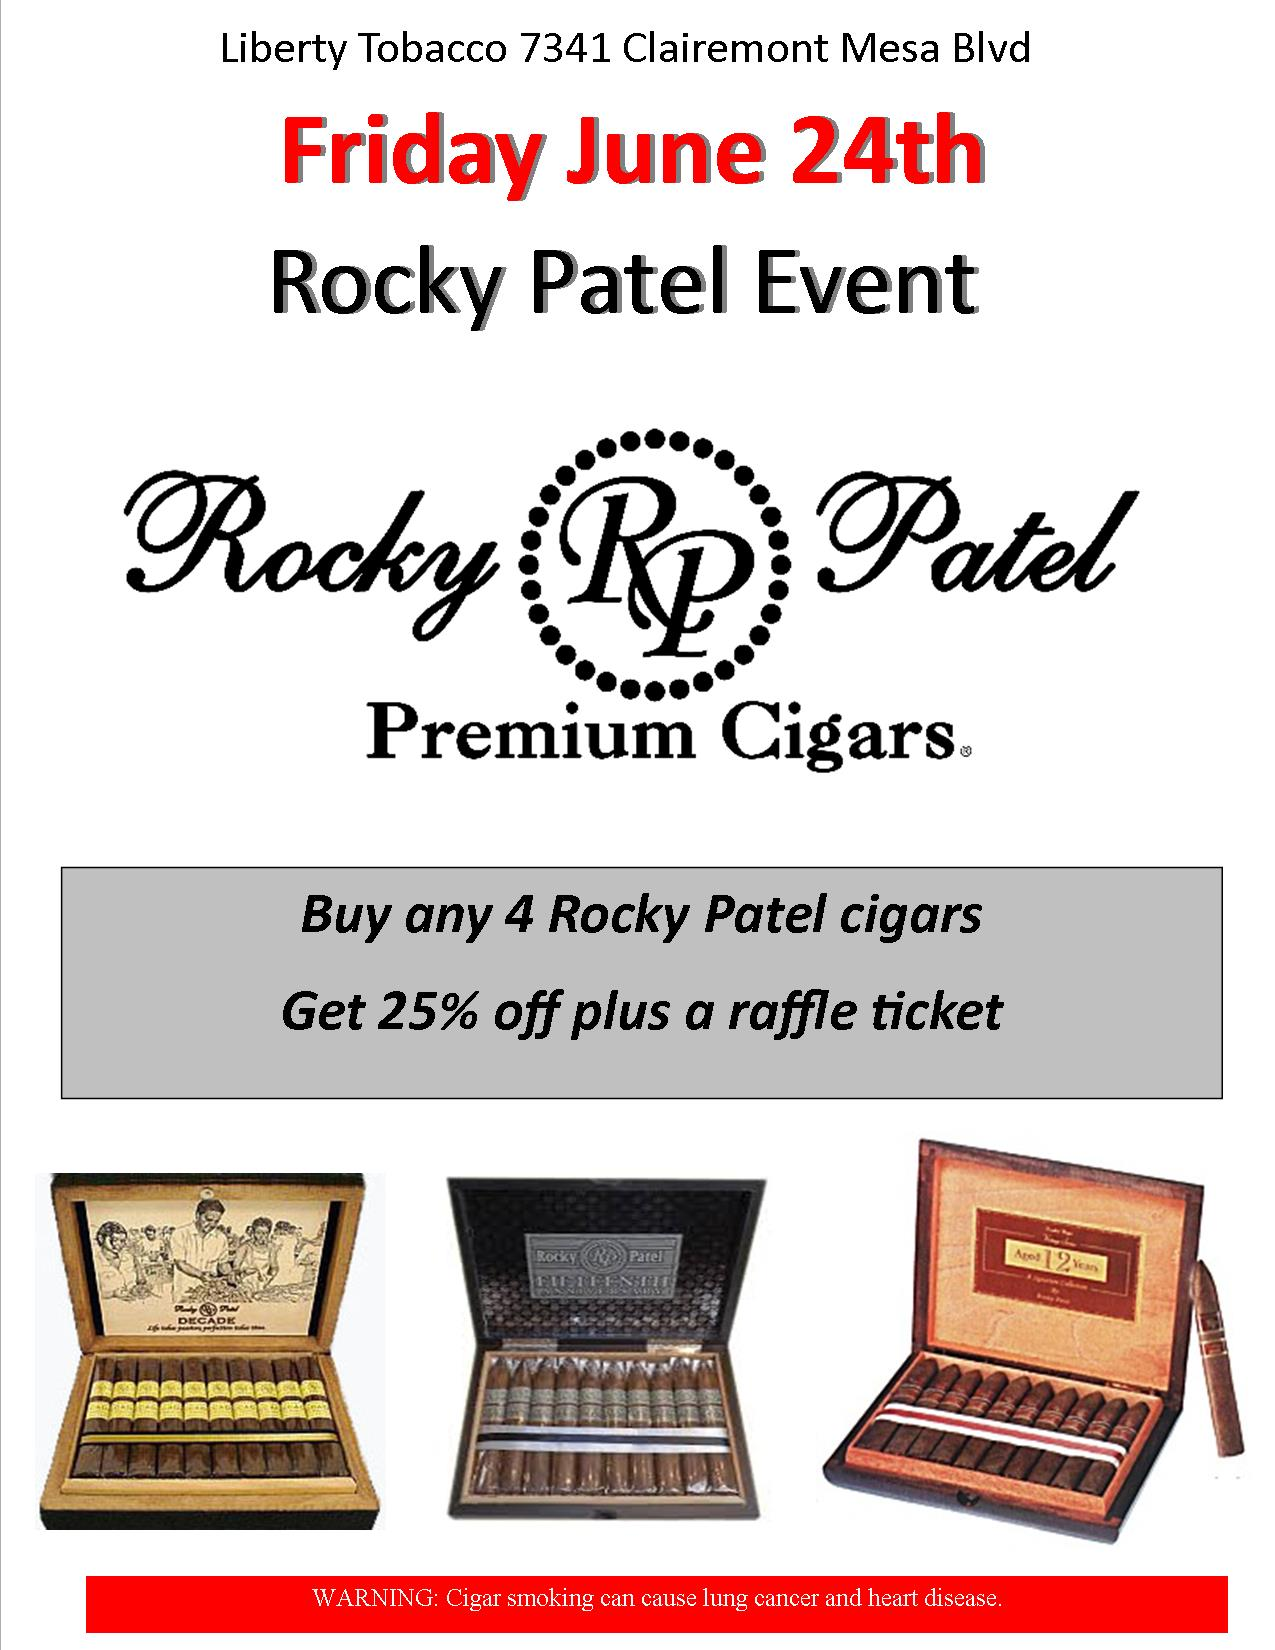 Rocky Patel Event at Liberty Tobacco